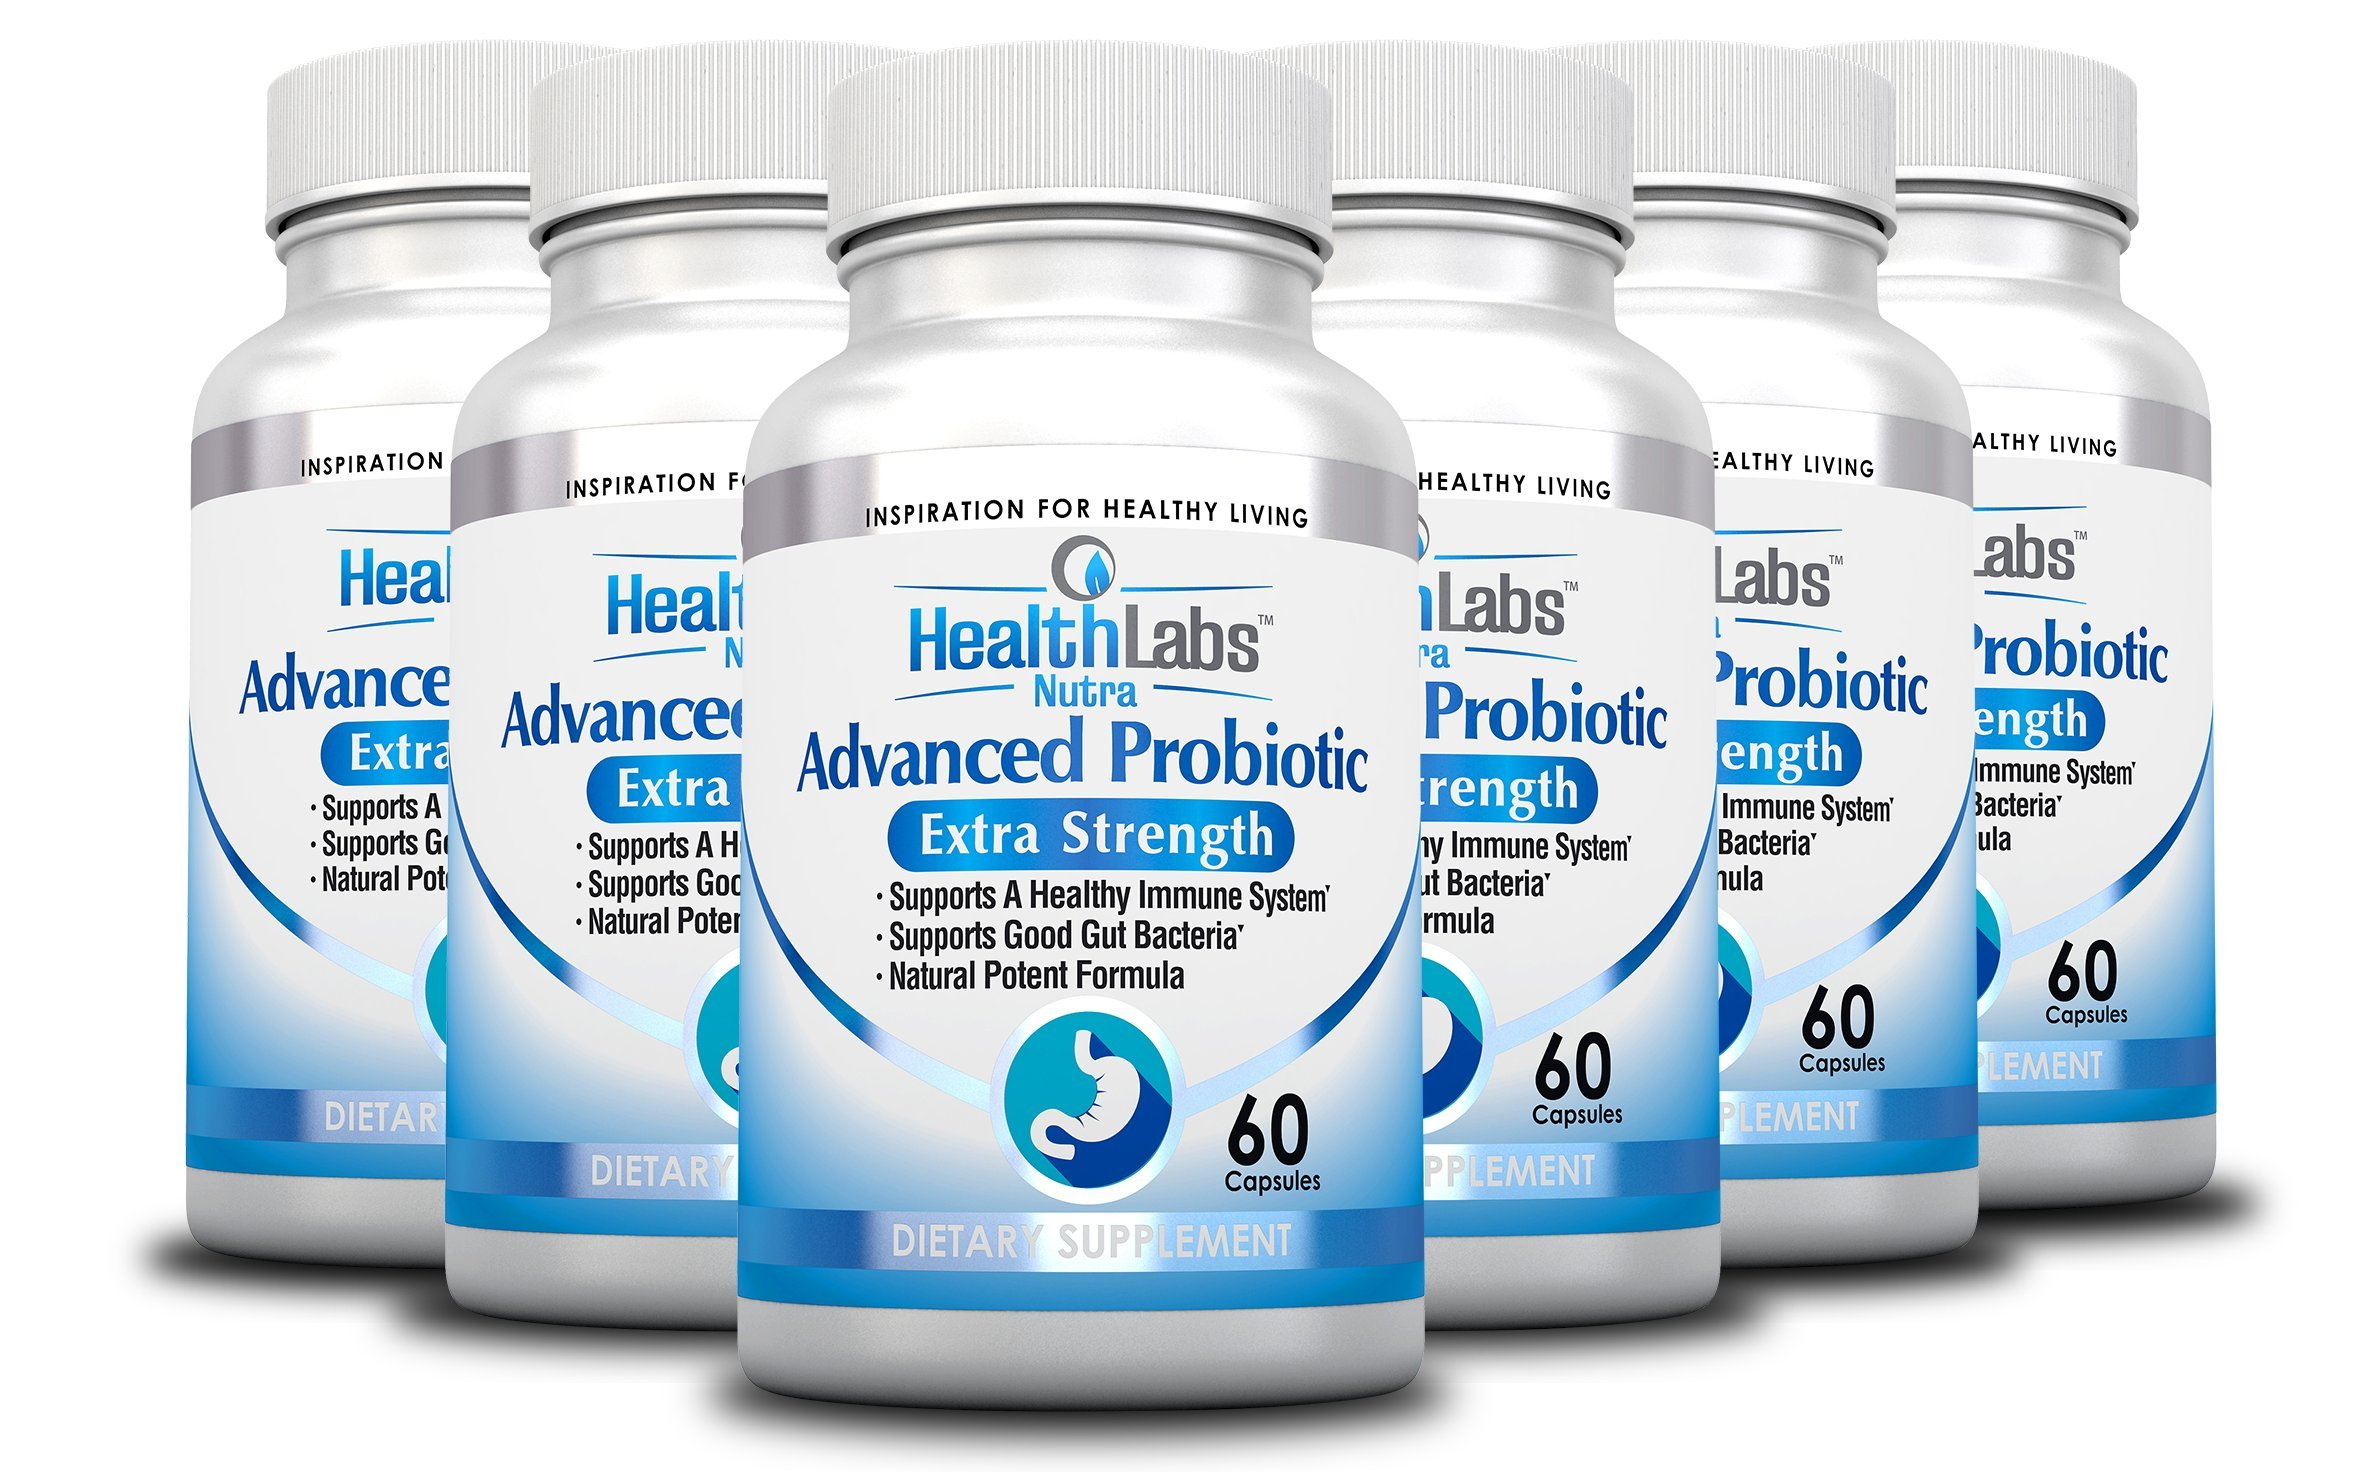 Advanced Probiotics 6-Month Supply Extra Strength Supplement for a Healthy Immune System, Restores Good Bacteria, Relieves Leaky Gut, Nausea, Indigestion, Irritable Bowel Syndrome (Pack of 6) by Health Labs Nutra